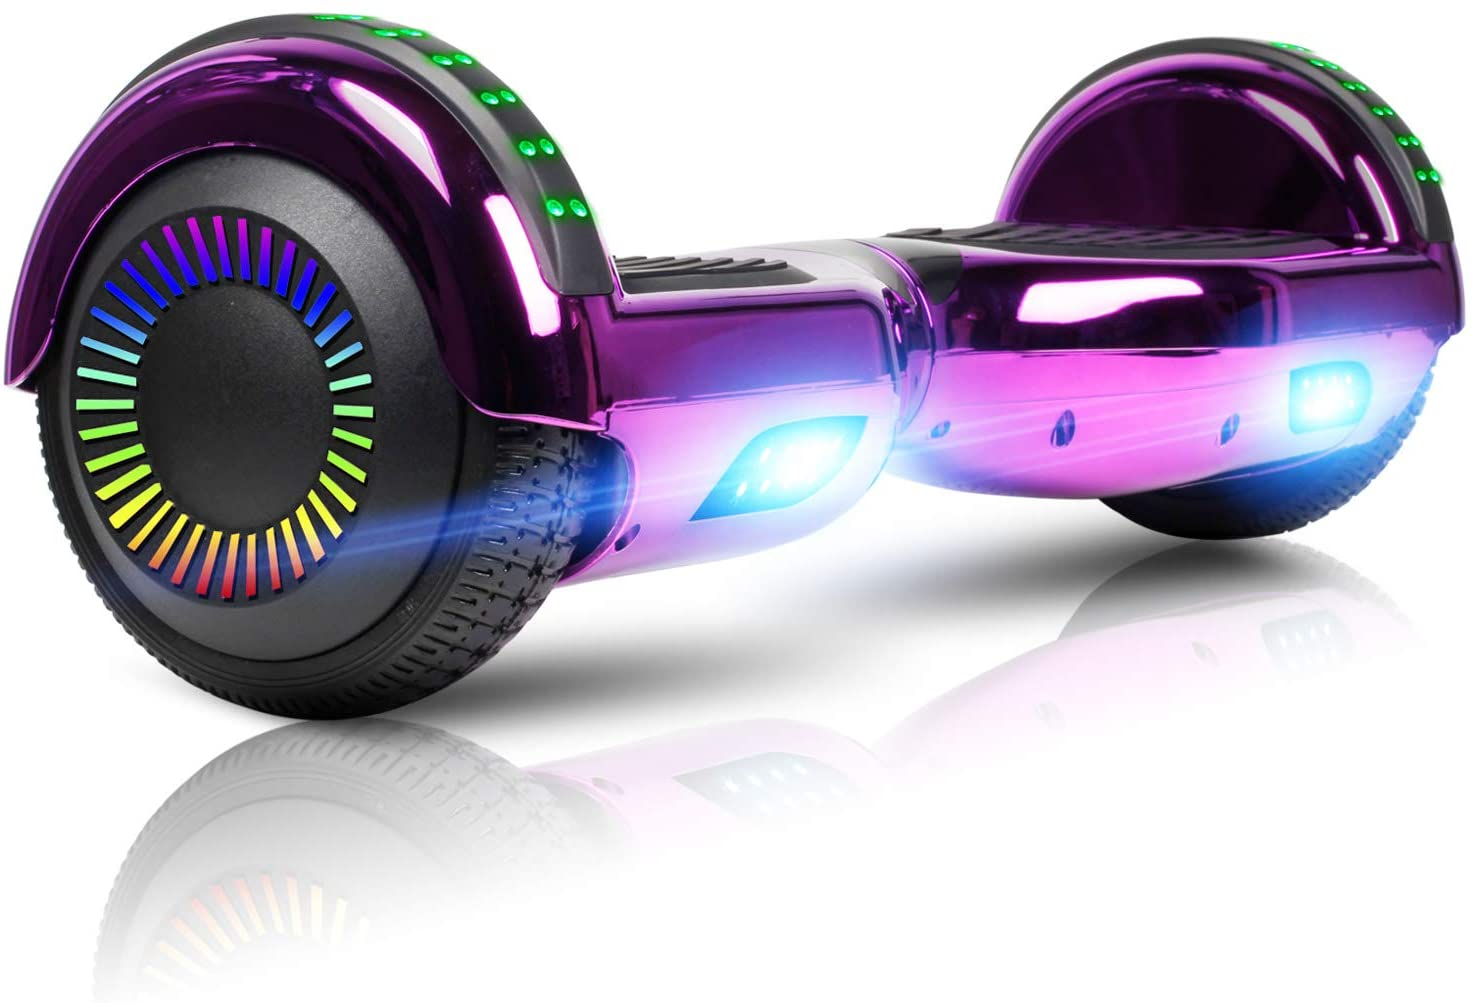 LIEAGLE Hoverboard with Bluetooth